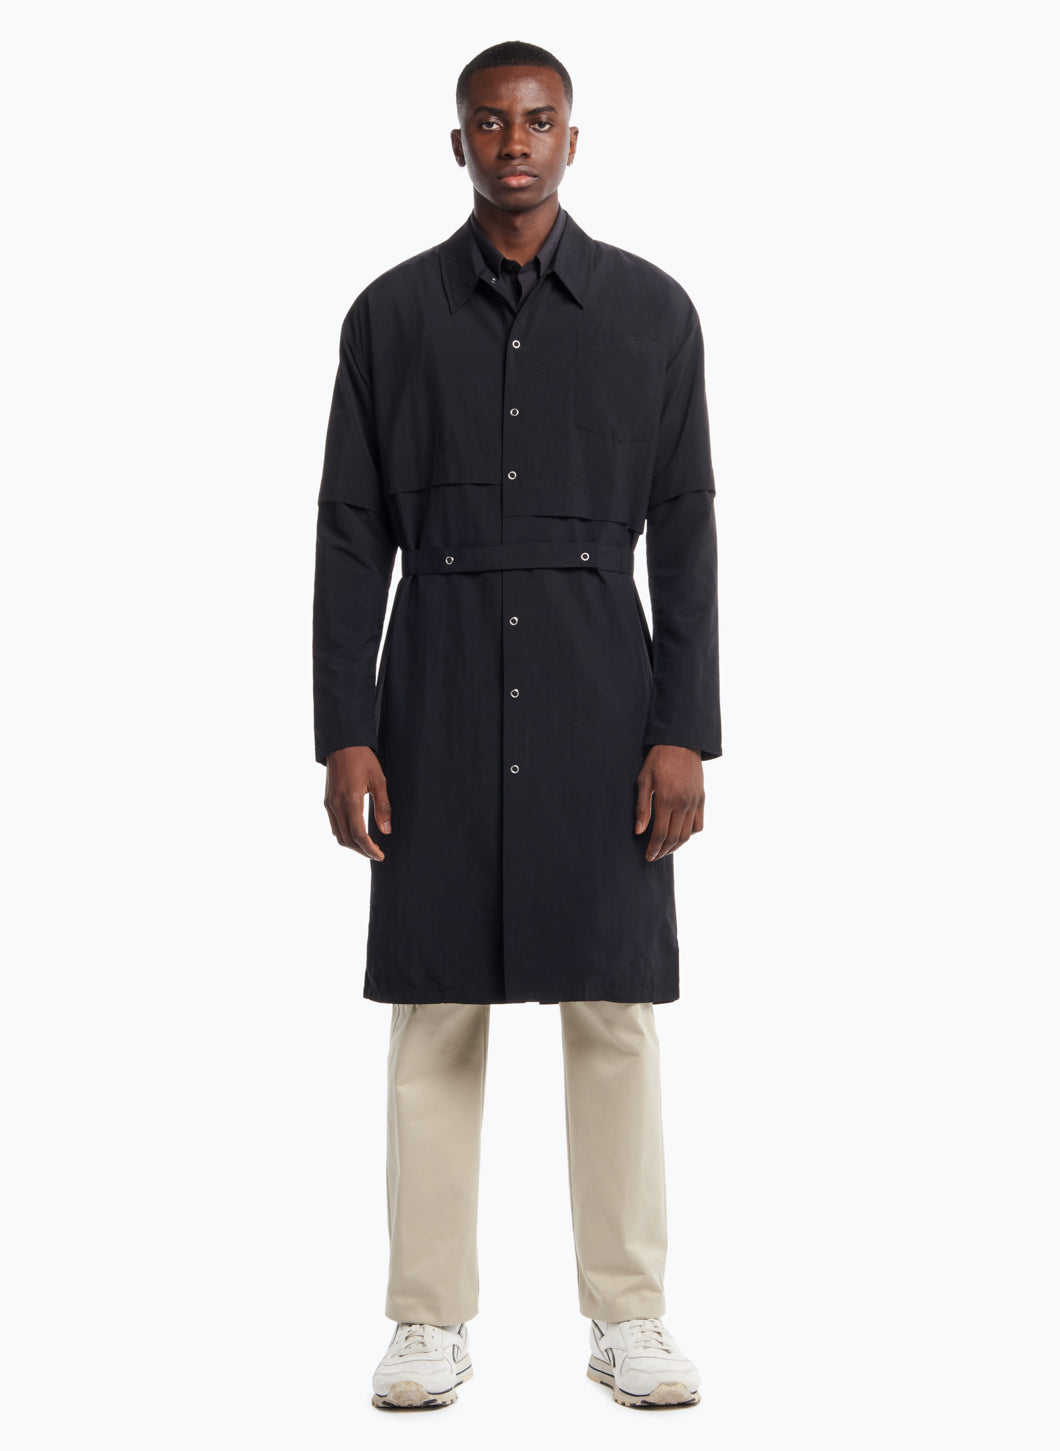 Asymmetrical Trench Coat in Black Microfiber Fabric